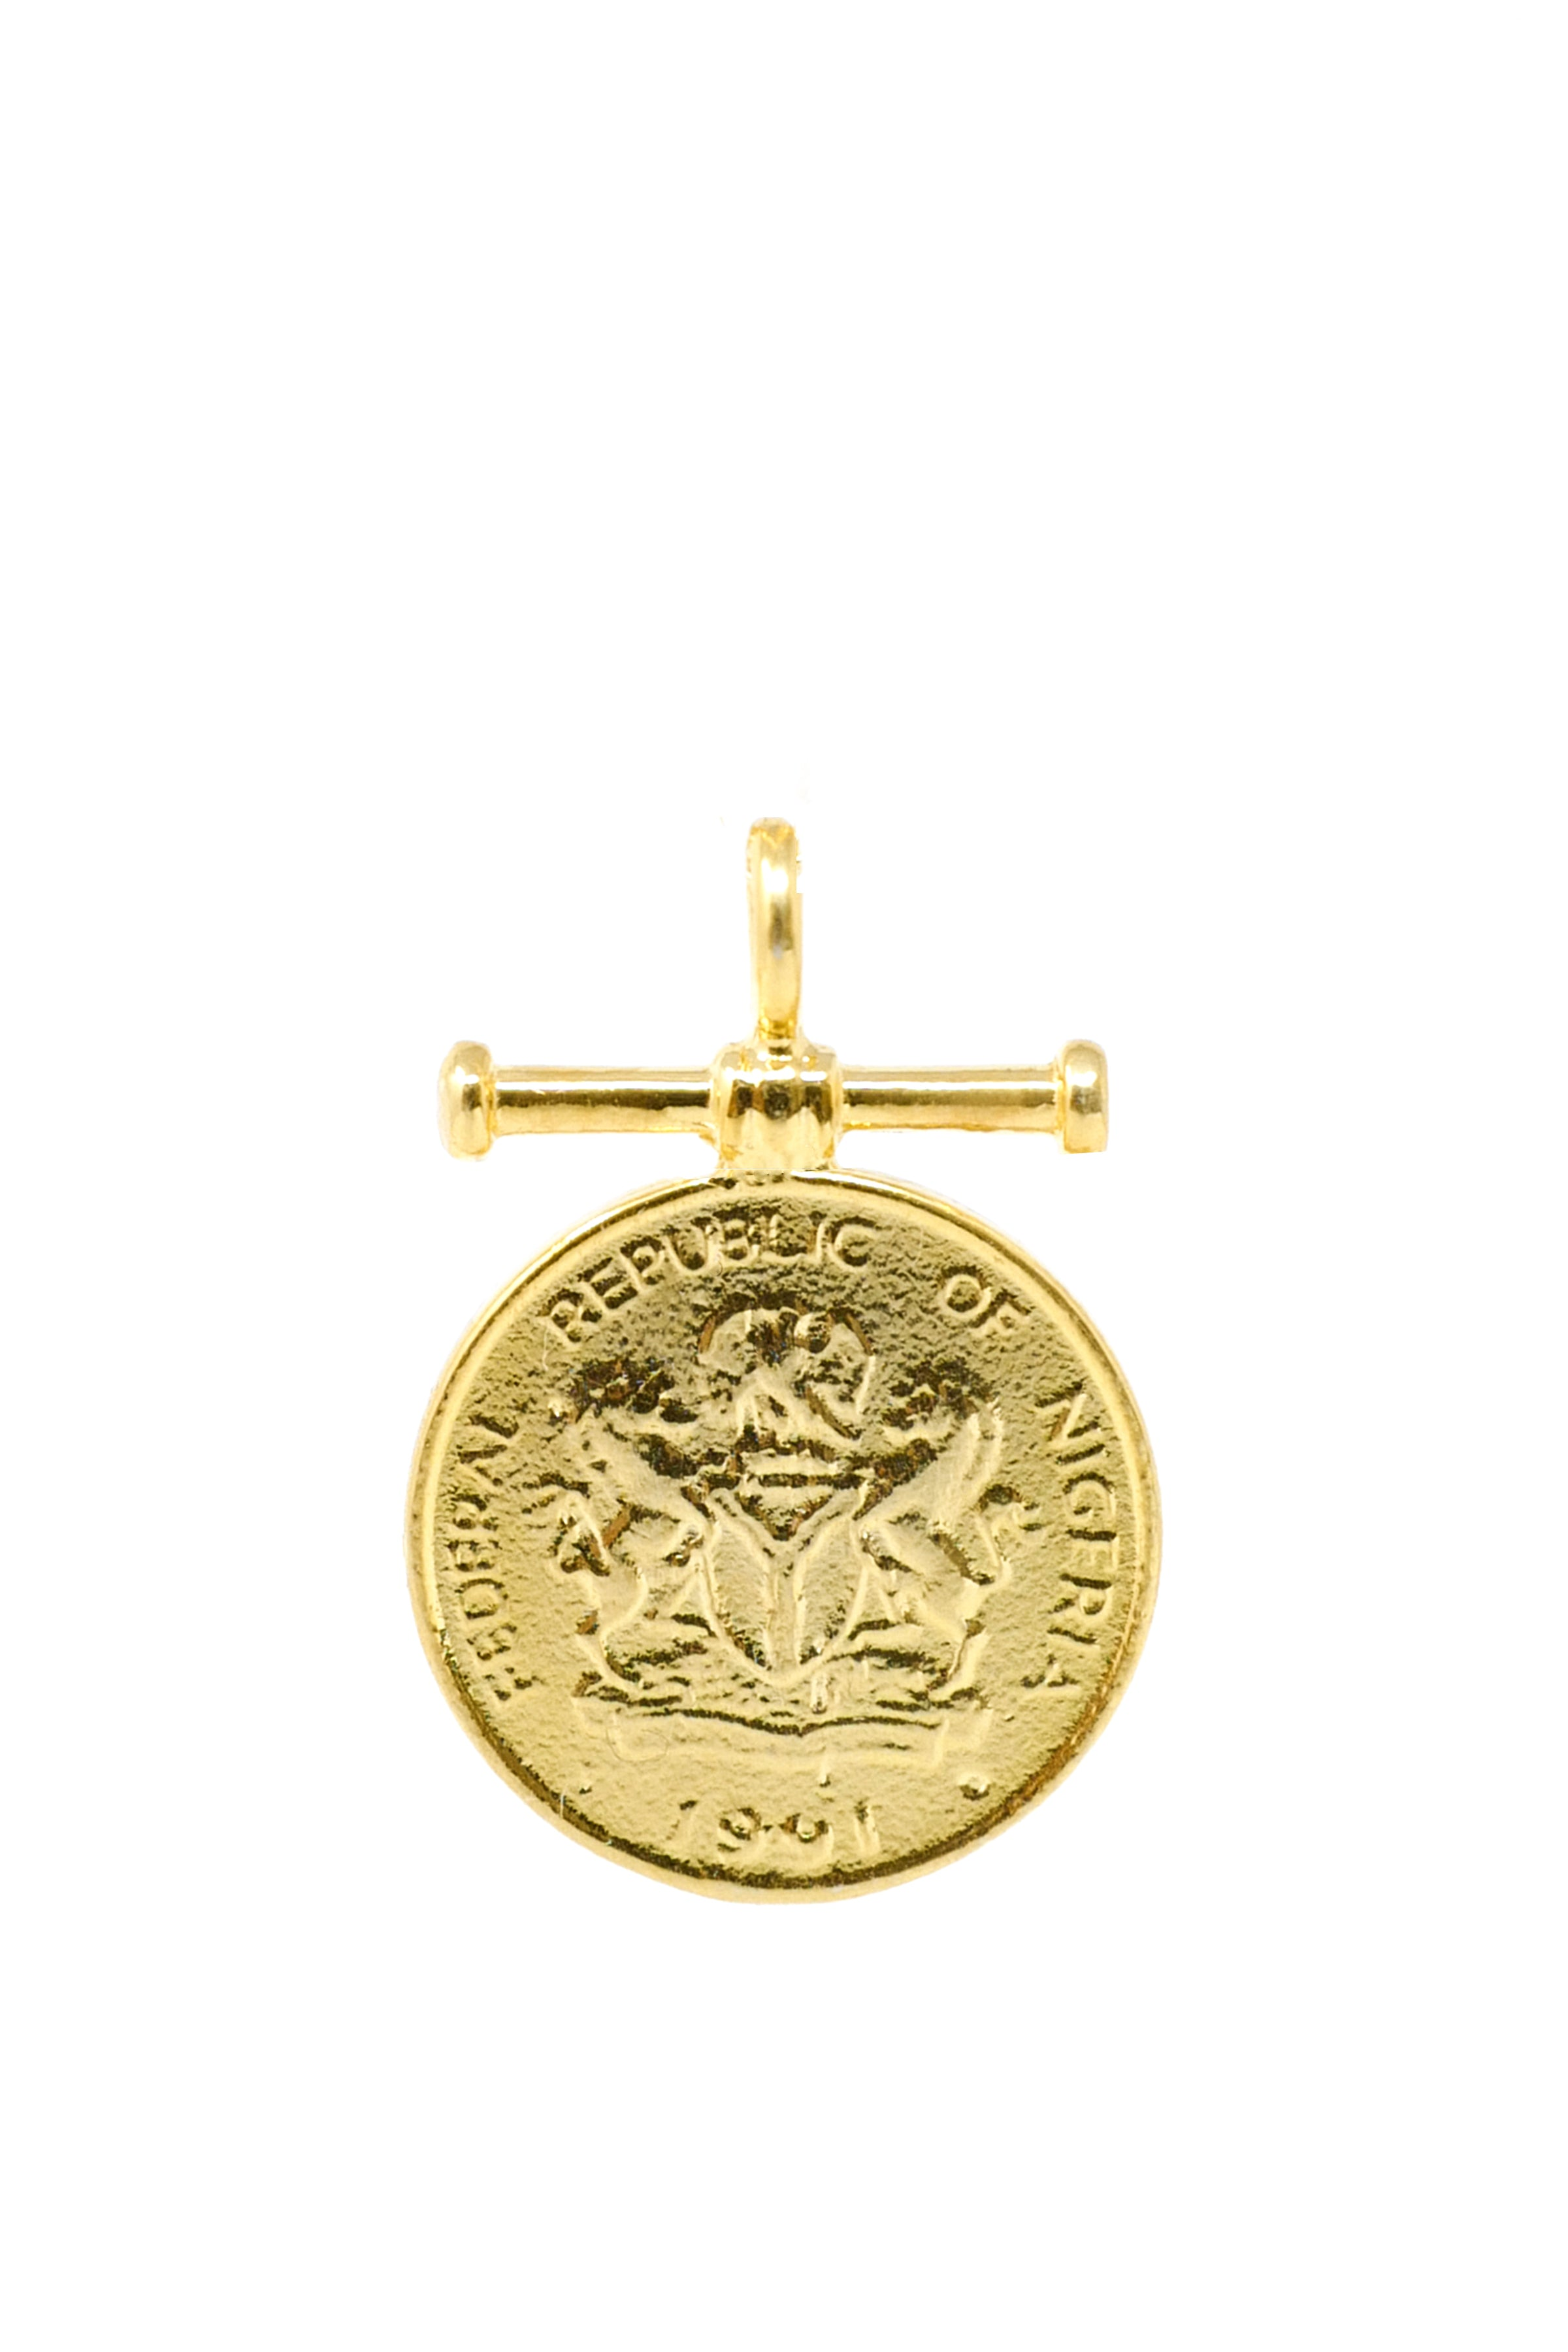 THE NIGERIA Classic Kobo Coin Pendant with Bar